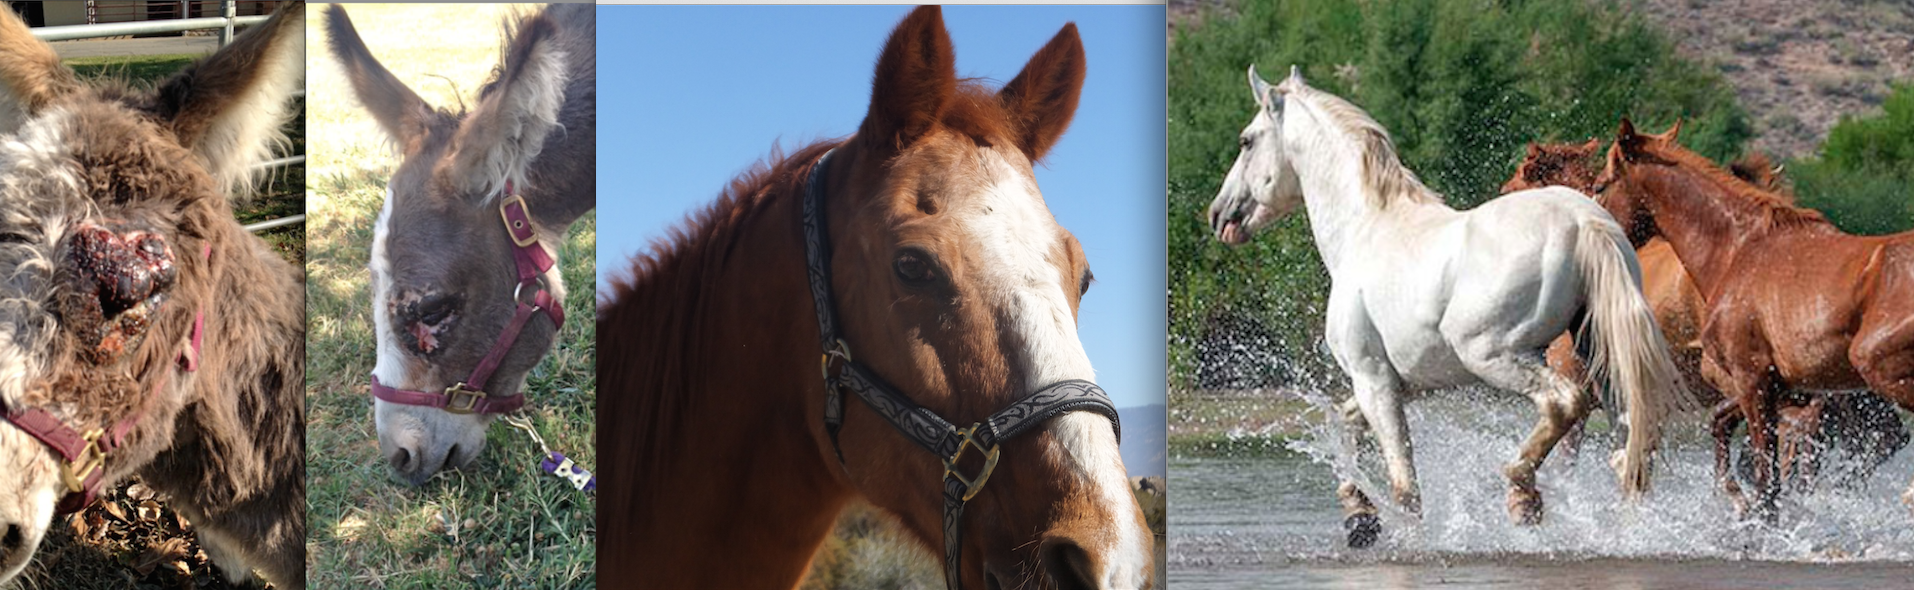 Our December Bucket Fund Horses!  Cinny the Ancient and Charming Gelding, Lila - the mini donk who survived sarcoid and the H&M Re-Wilding Program.  Click here to read all about these horses!   Gift donation Certificates available!